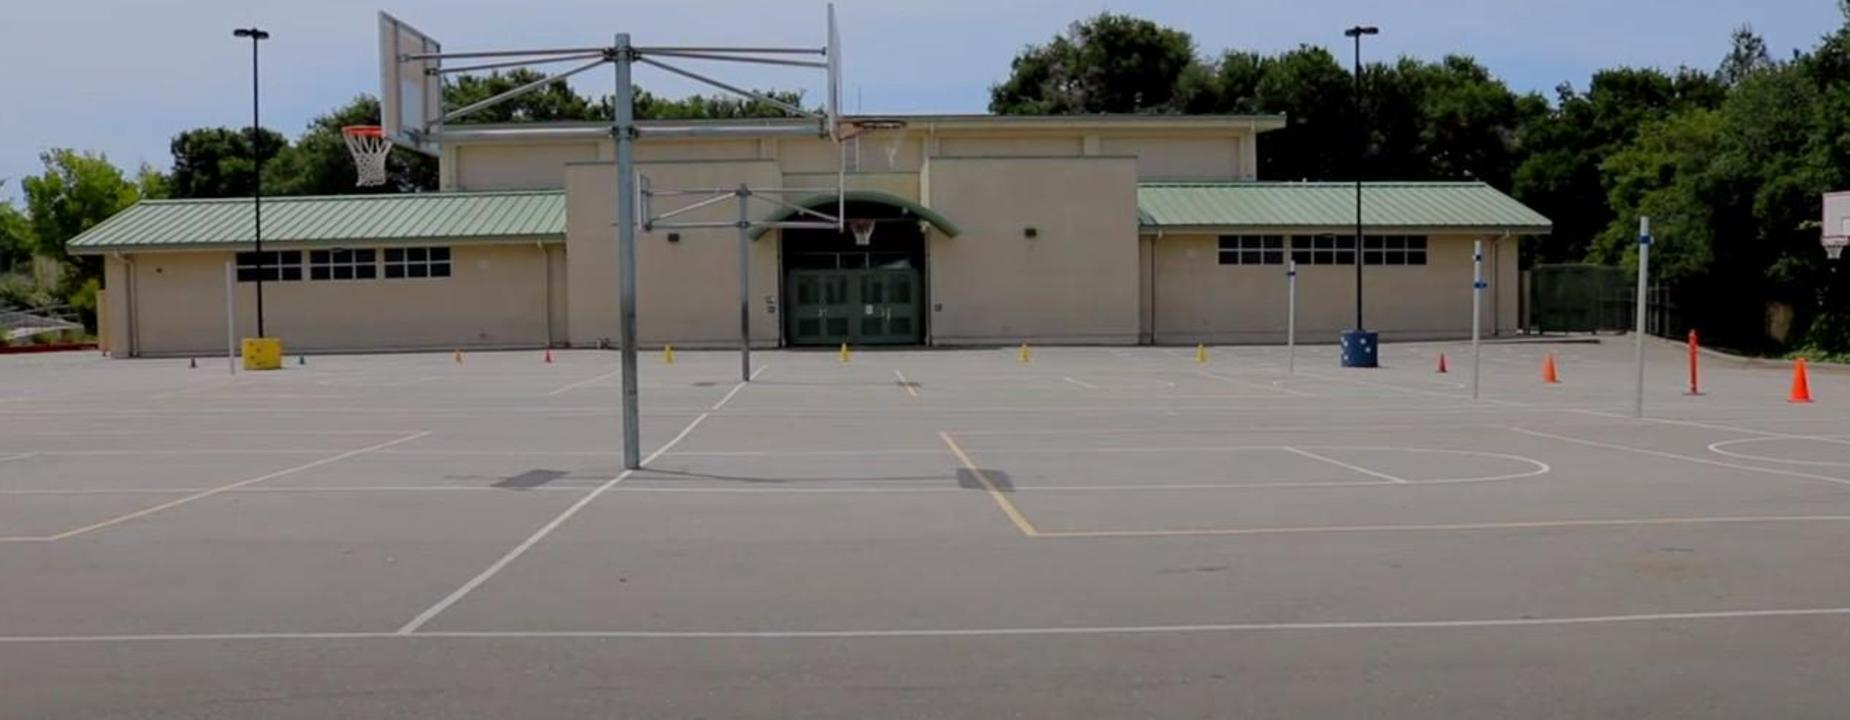 Gym and courts